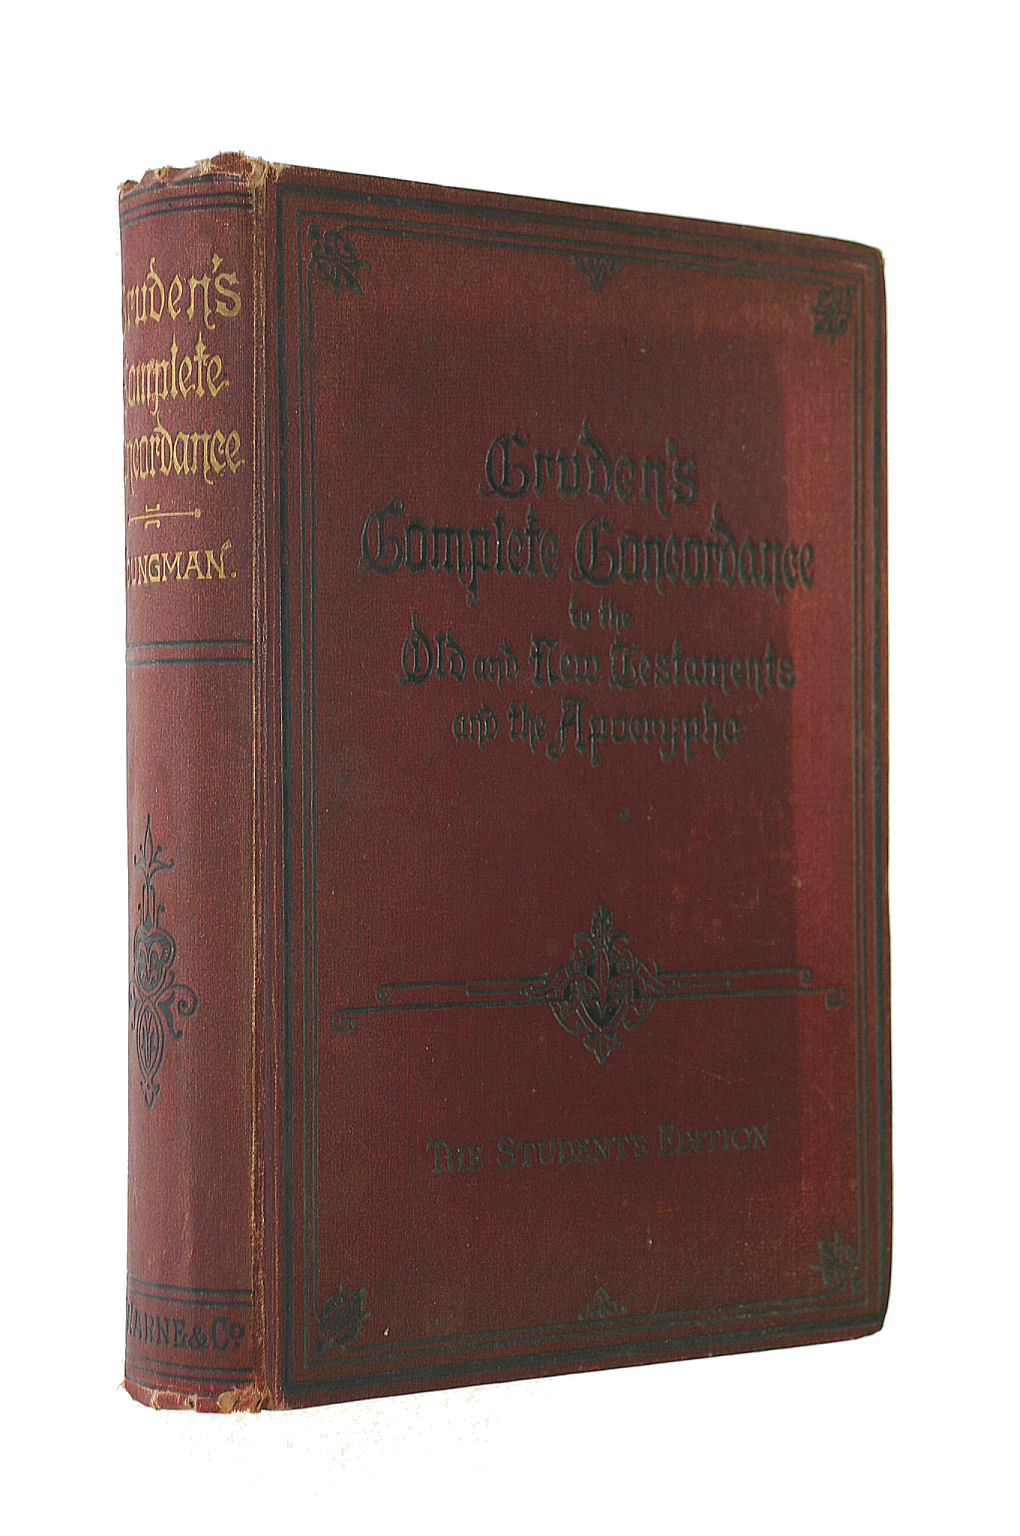 Image for Cruden's Complete Concordance to the Old and New Testaments and the Apocrypha